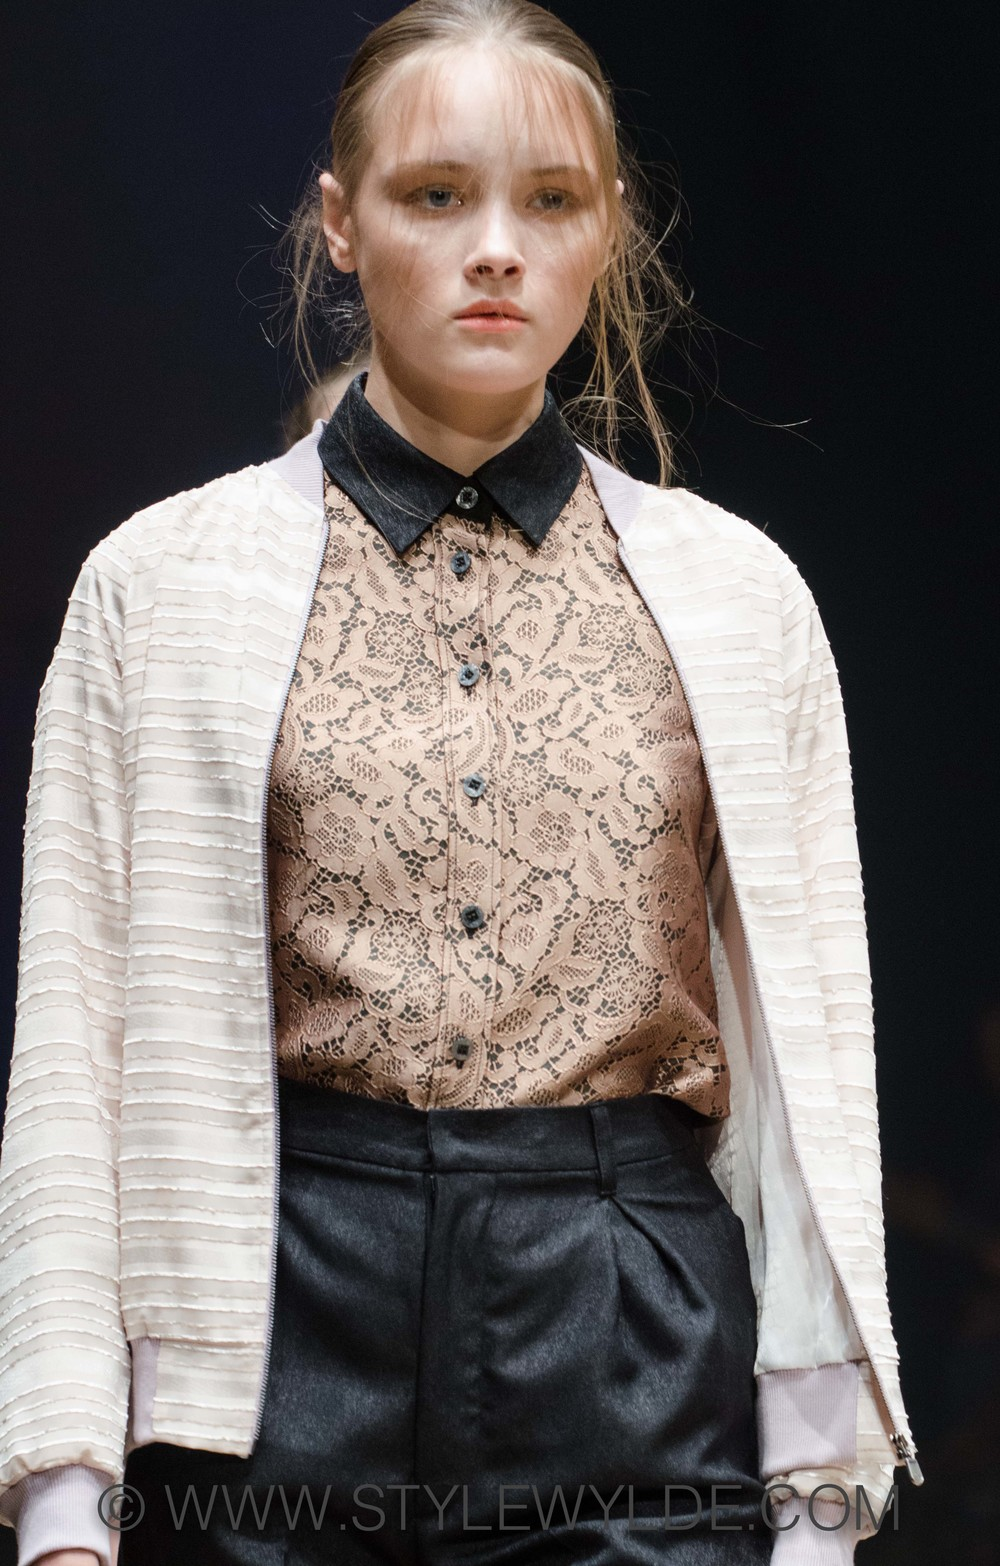 StyleWylde_InProcess_SS2014 (1 of 1)-21.jpg